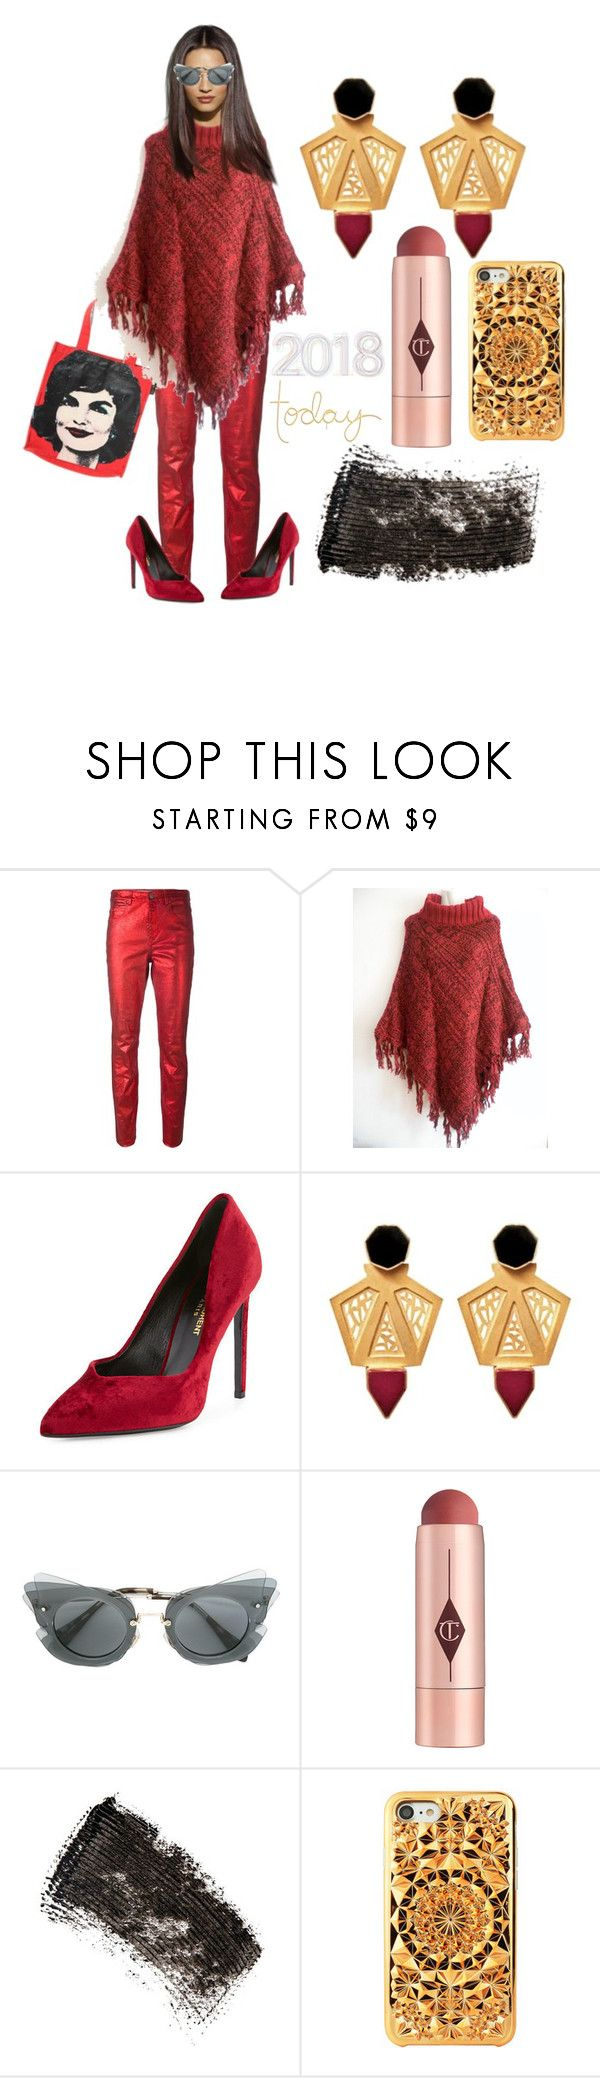 """2018 Today"" by michelle858 ❤ liked on Polyvore featuring Étoile Isabel Marant, Andy Warhol, Miu Miu, Charlotte Tilbury and W3LL People"